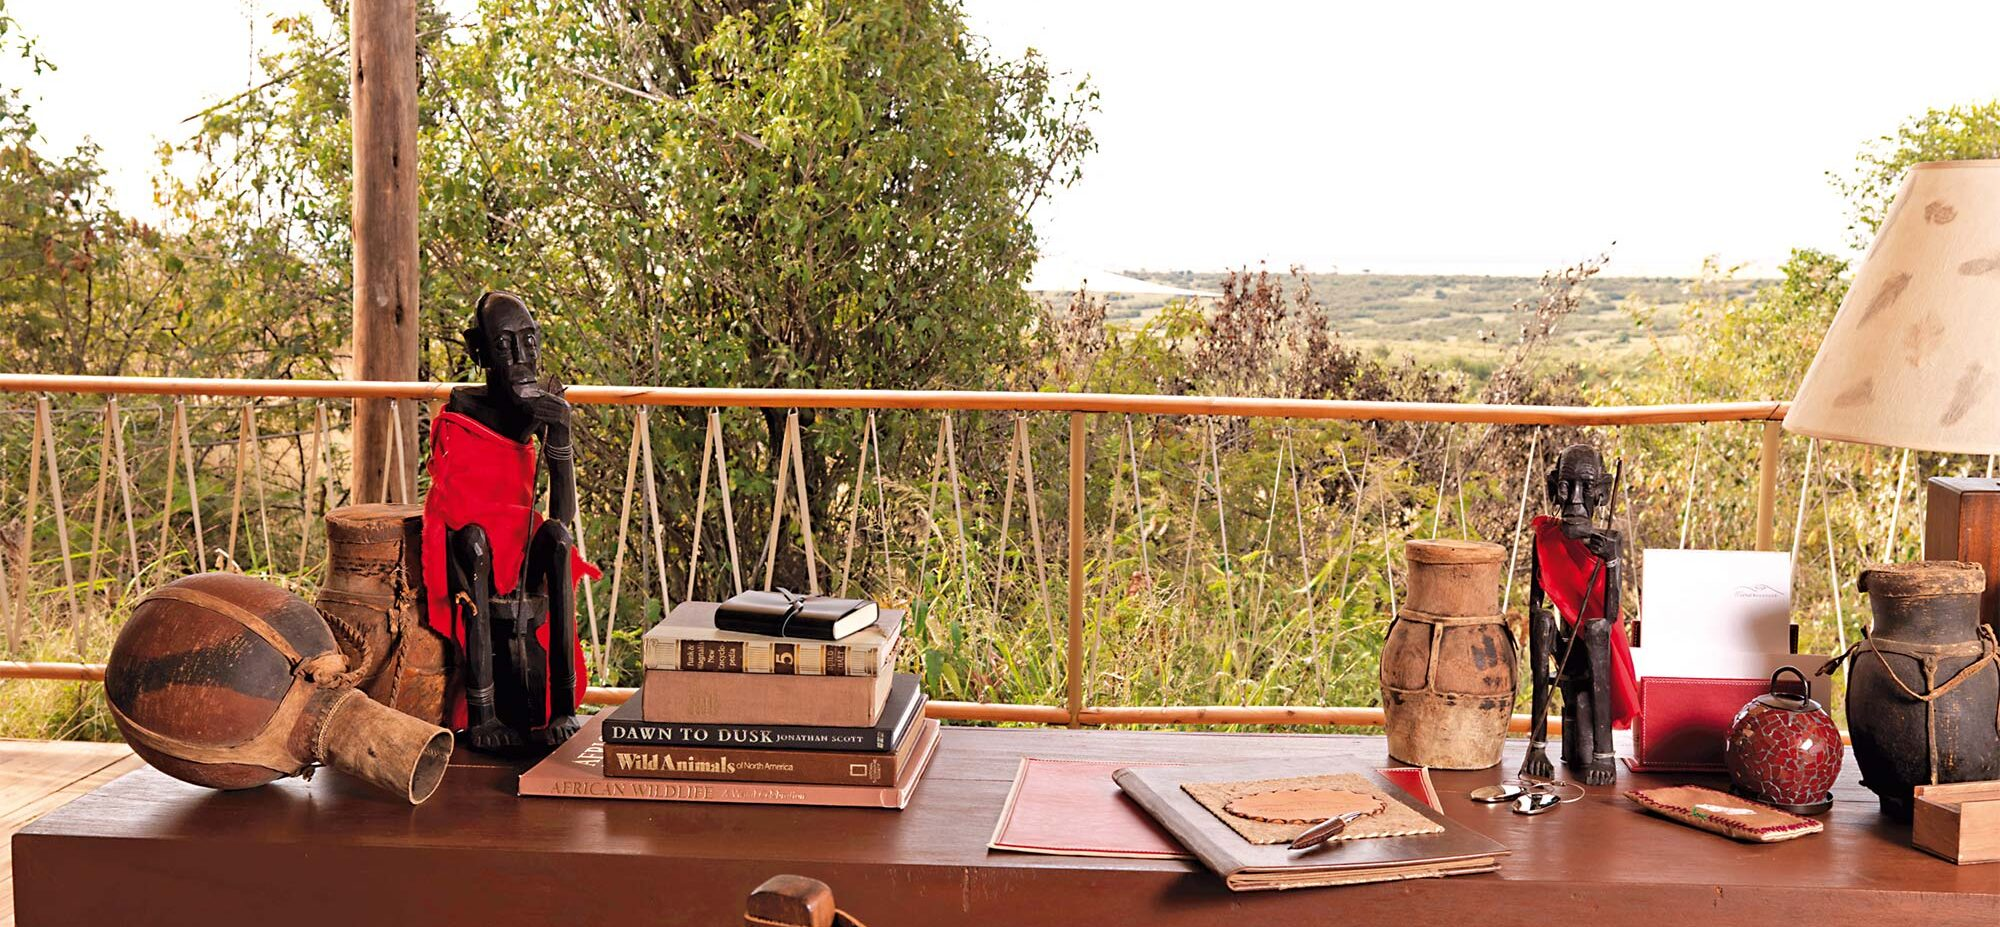 A close up of a desk with African decor overlooking the conservancy